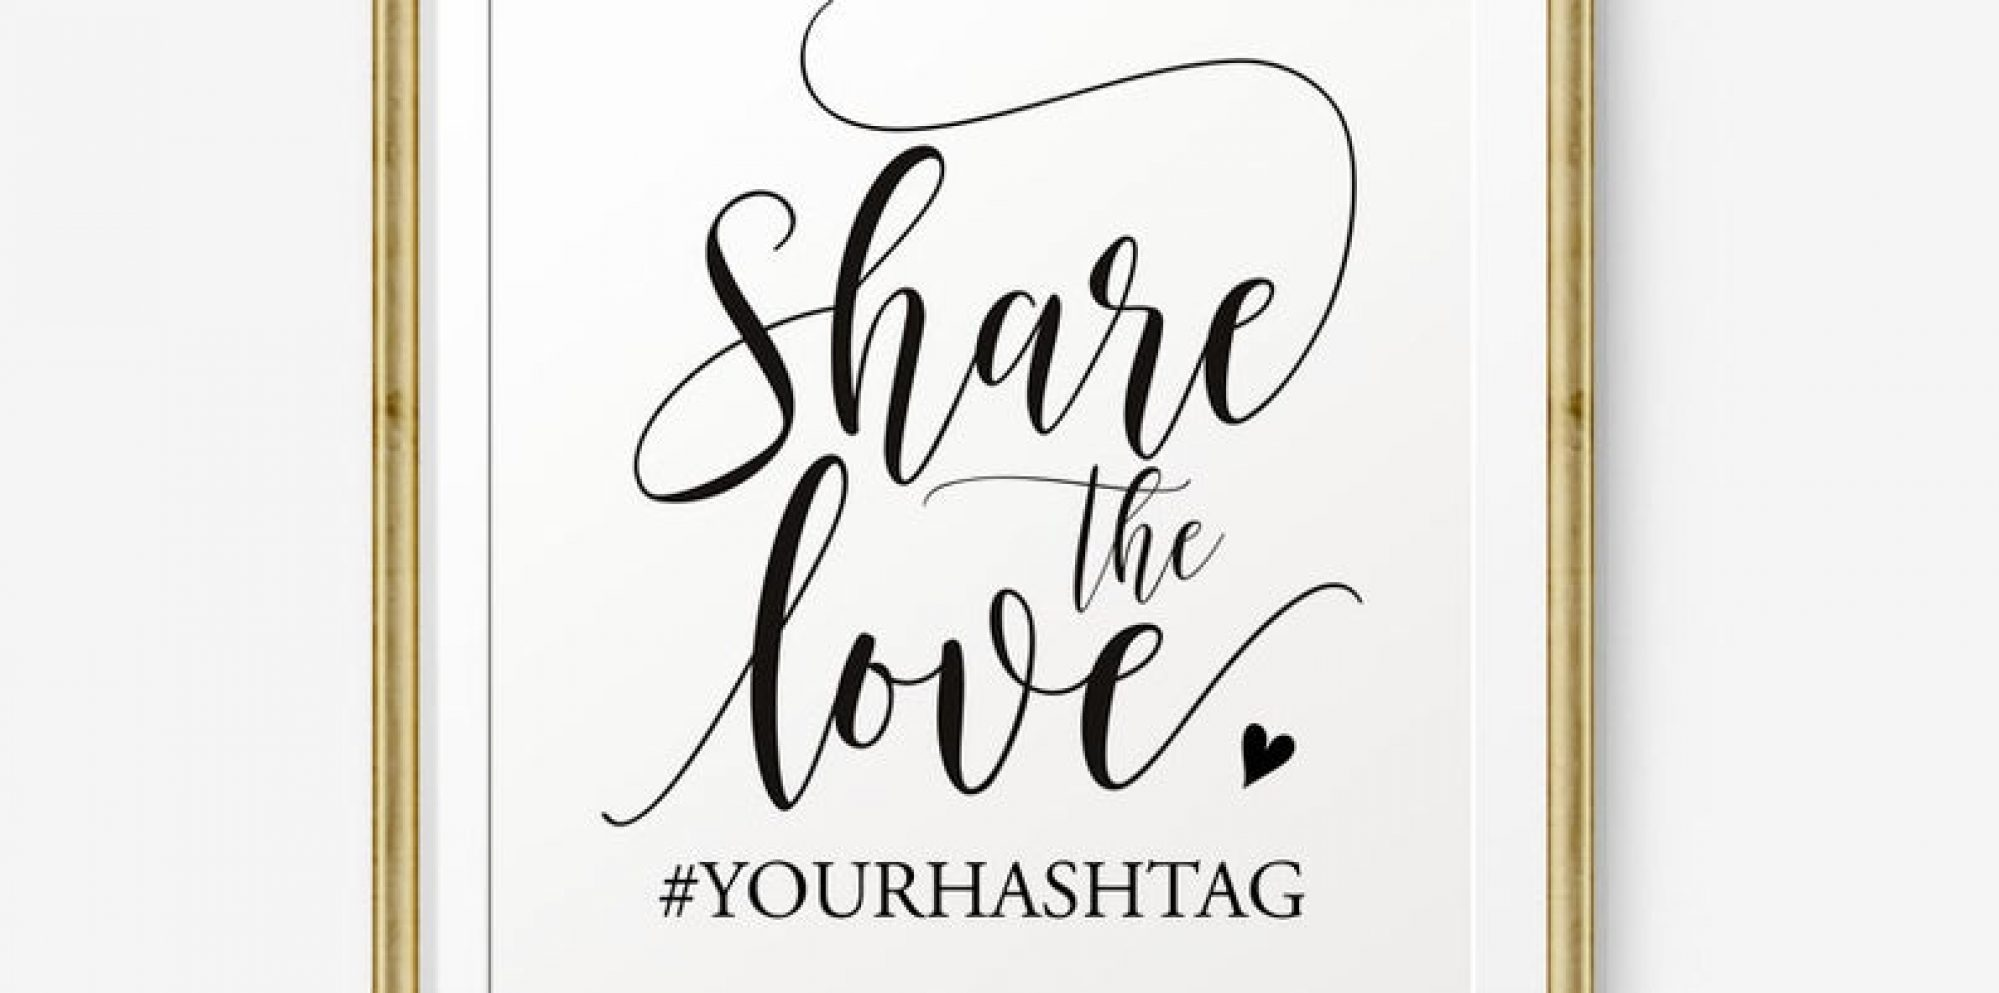 The wedding hashtag ideas you should definitely read